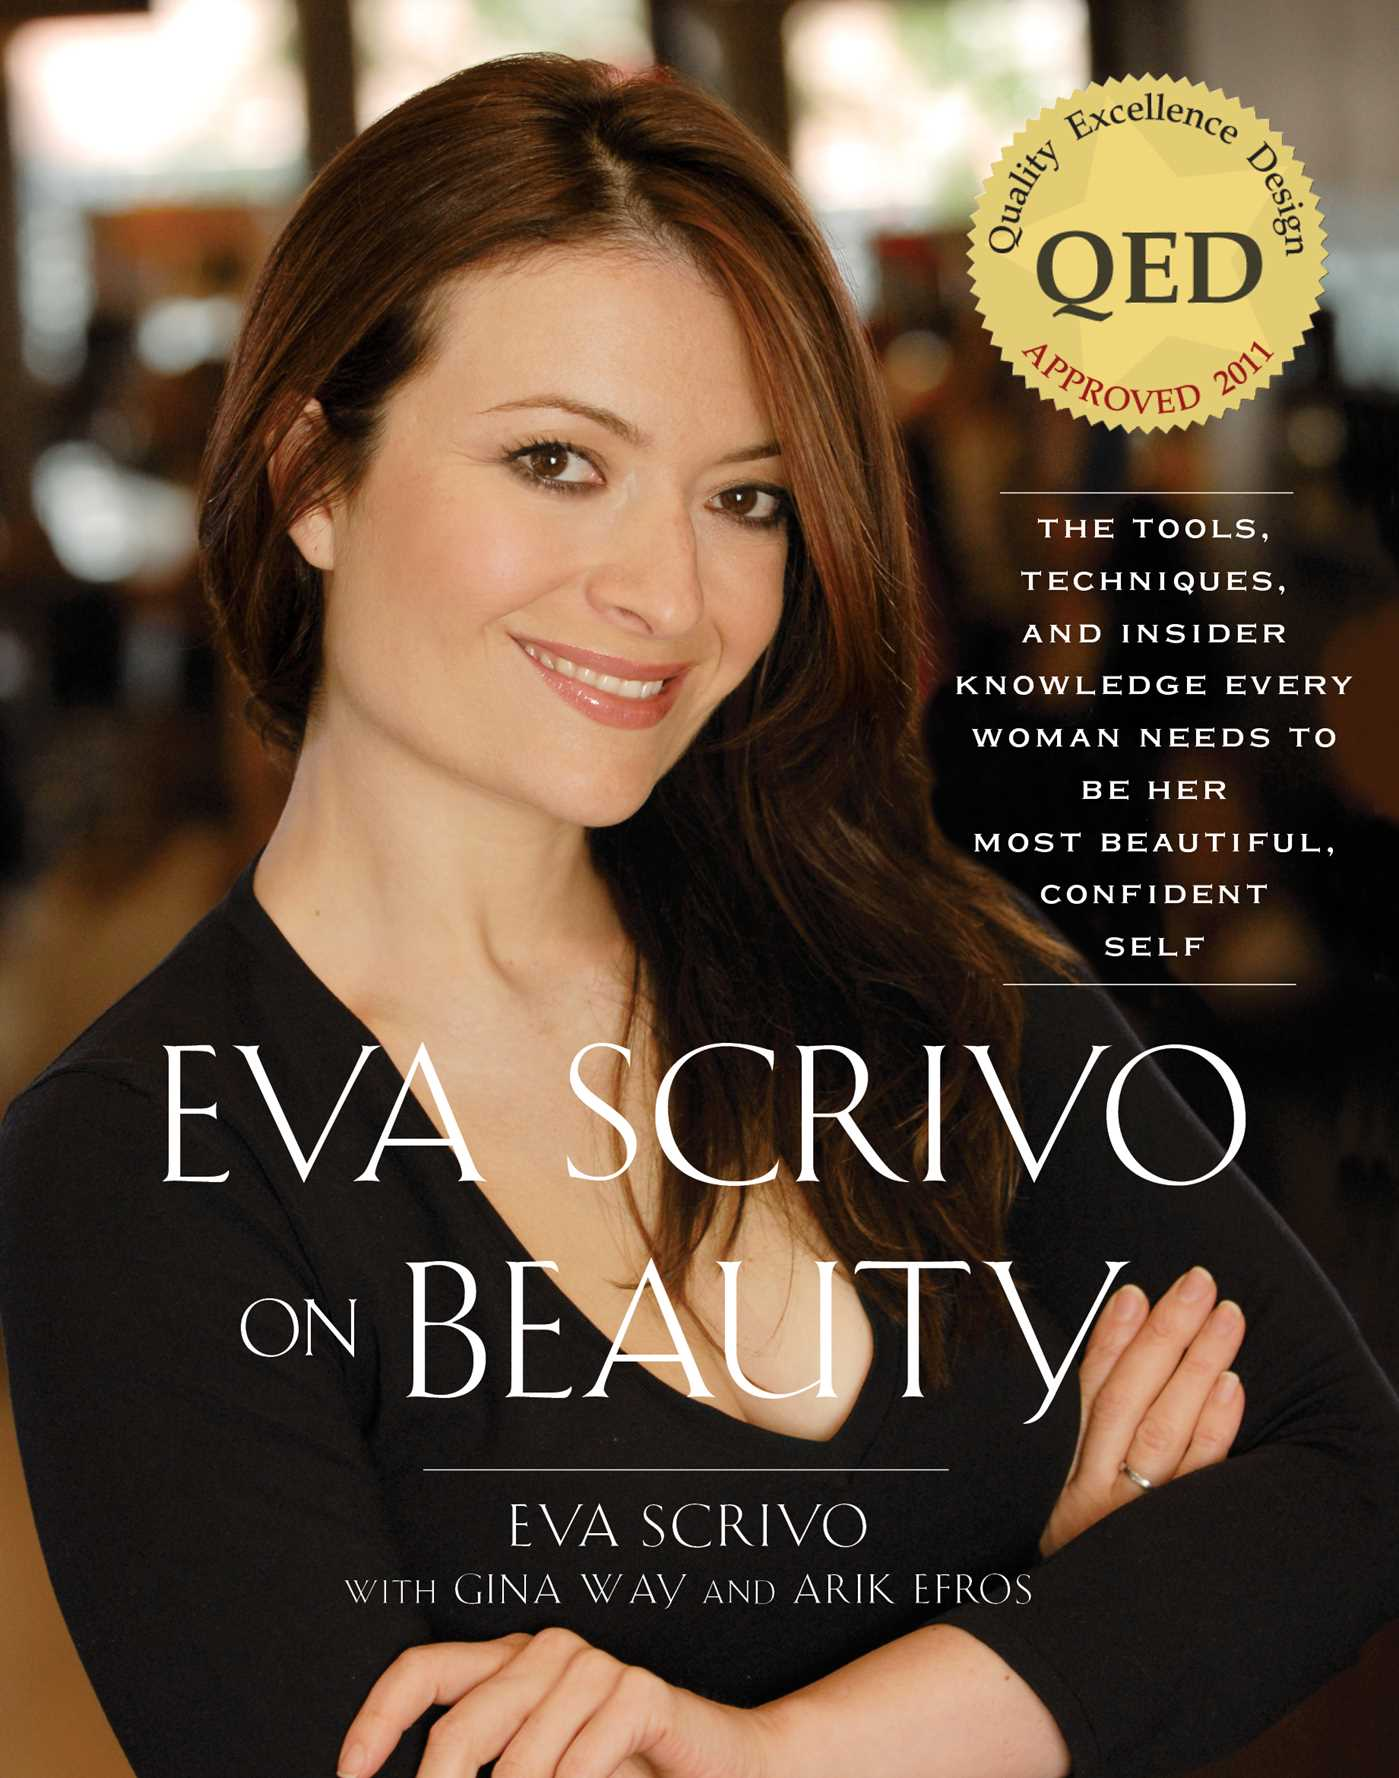 Eva scrivo on beauty (with embedded videos) 9781439164860 hr